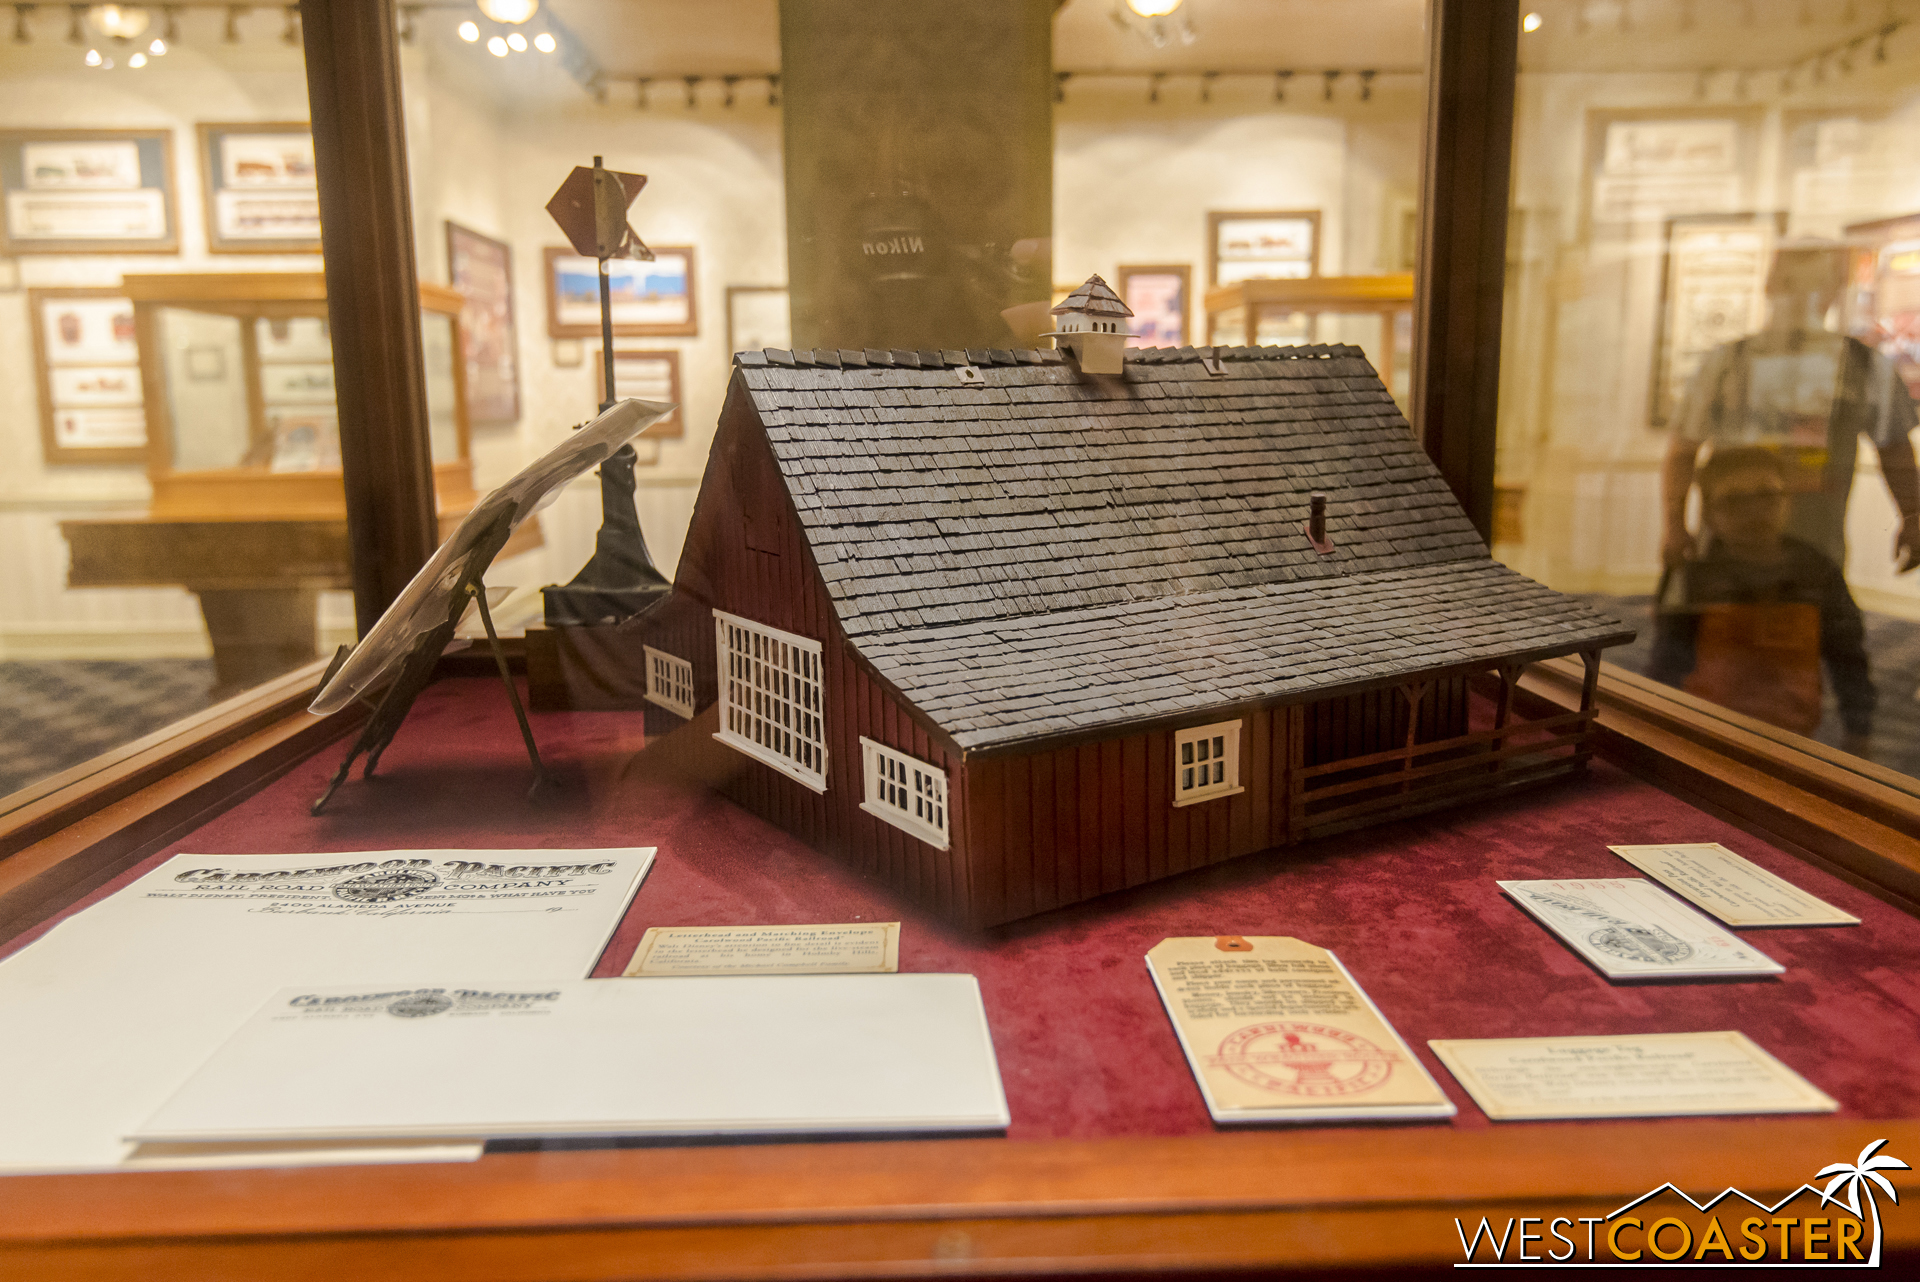 A model of Walt Disney's Carolwood Barn, which you can visit for free over at Griffith Park on select Sundays each month!